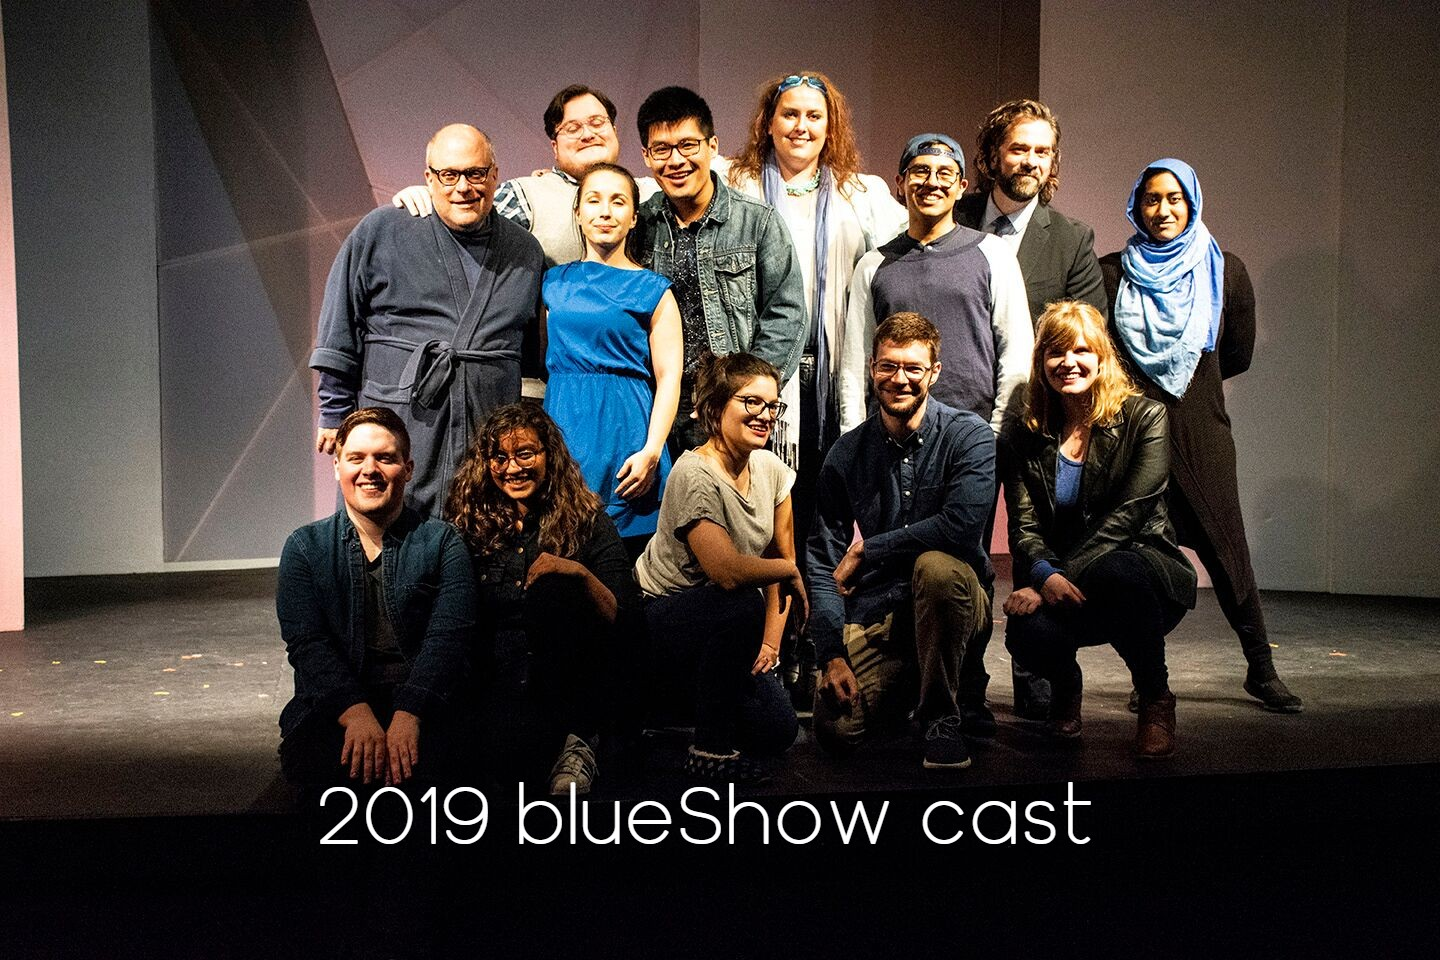 blueShow cast - 2019.jpg